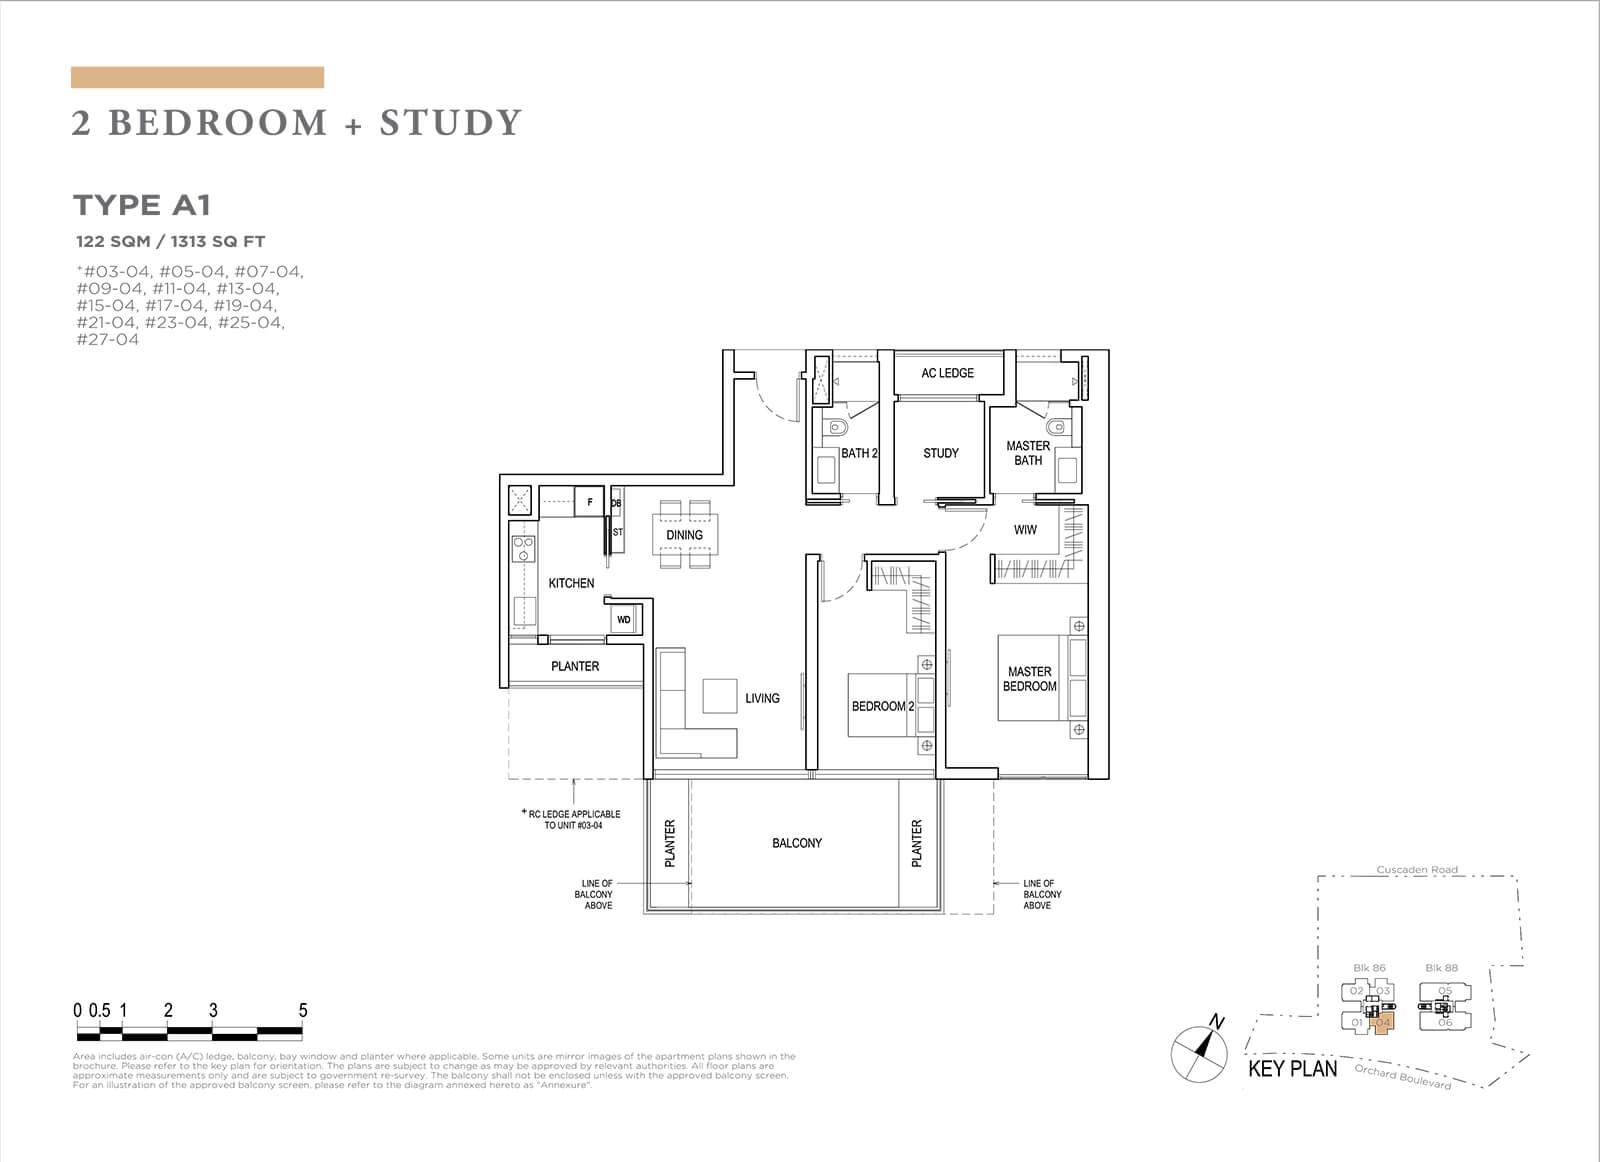 Boulevard 88 Floor Plan 2 Bedroom Study Type A1